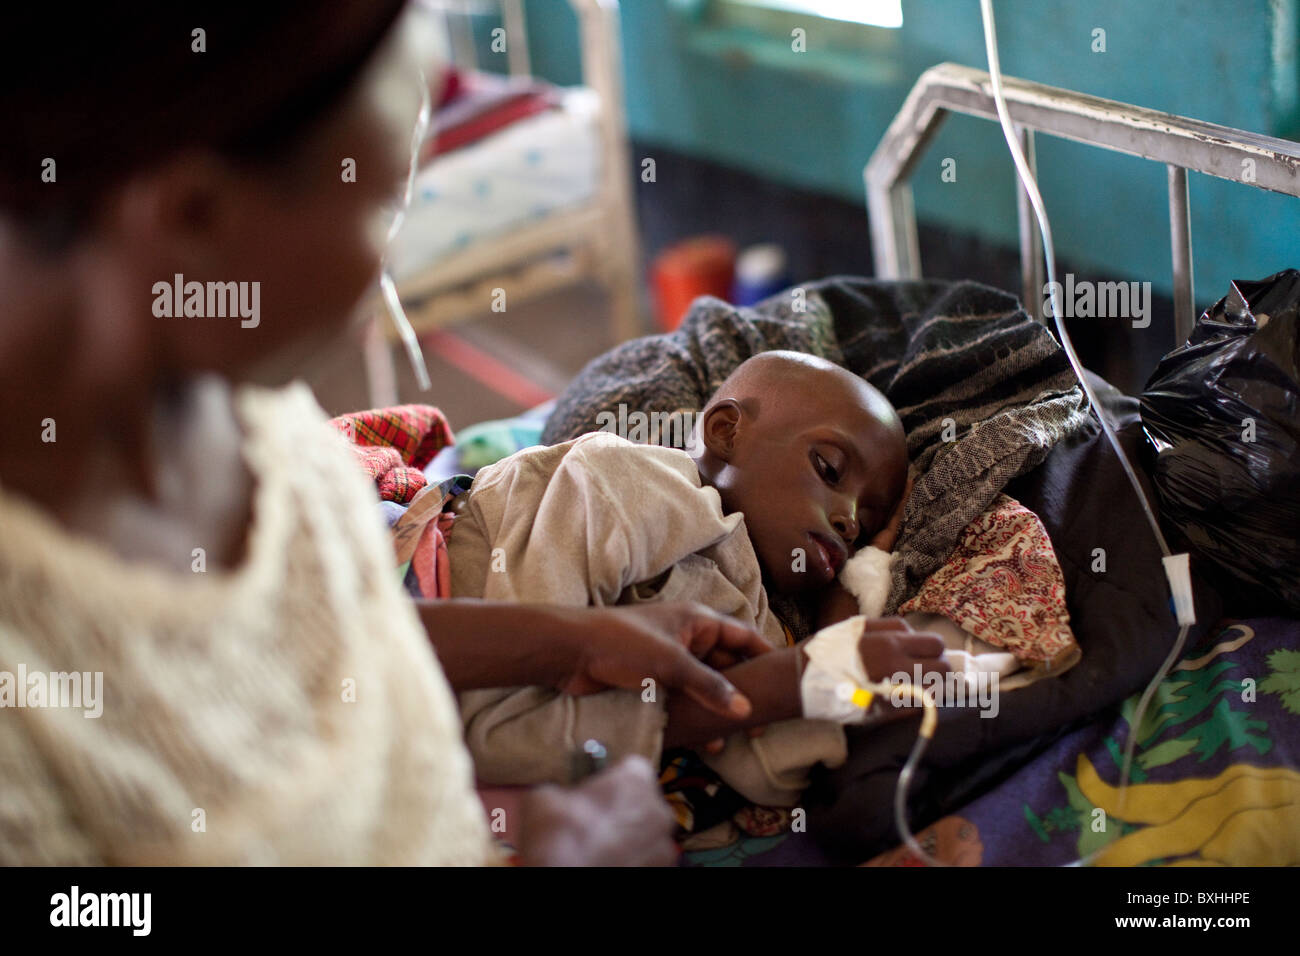 A child dying of AIDS receives medical treatment in a hospital in Amuria, Uganda, East Africa. - Stock Image